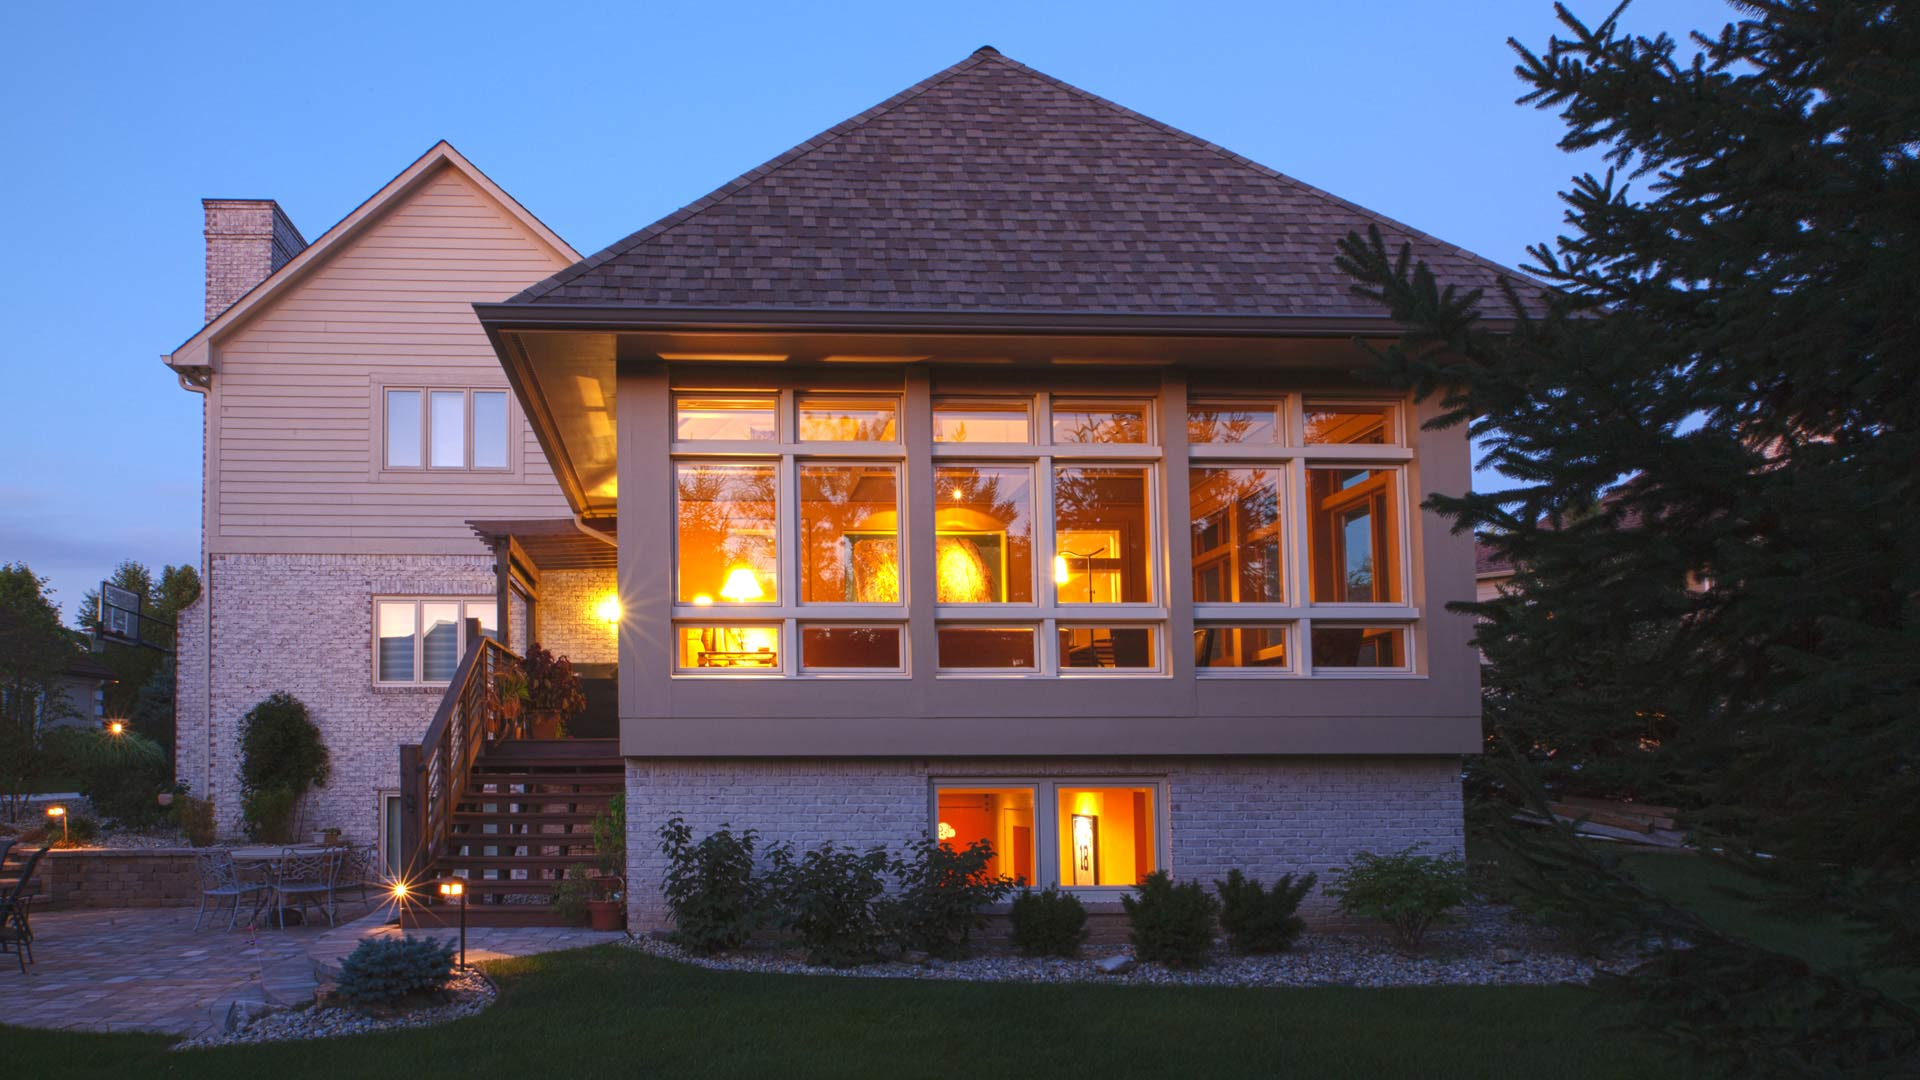 Exterior View of Sunroom Addition - Kitchen and Family Room Addition - Indianapolis, IN